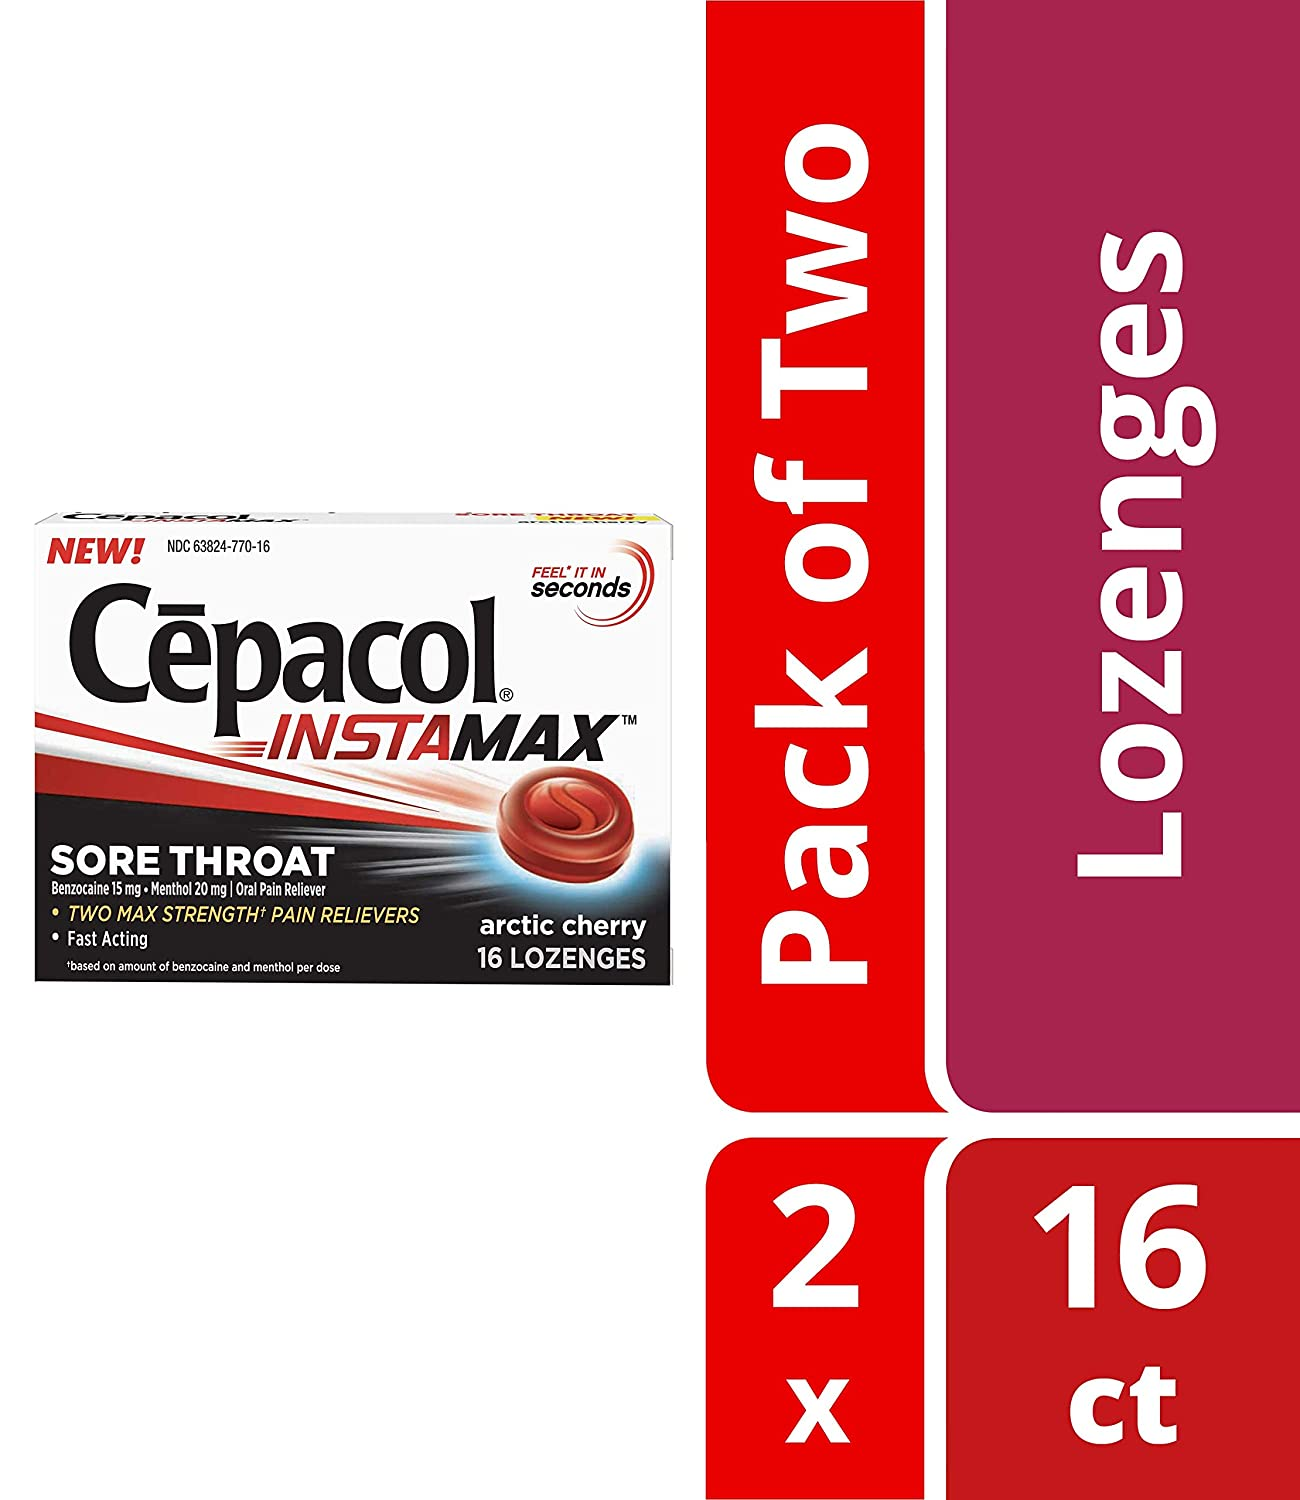 Cepacol Instamax Sore Throat Lozenges, Arctic Cherry, Fast Acting, Max  Strength Oral Pain Relief-